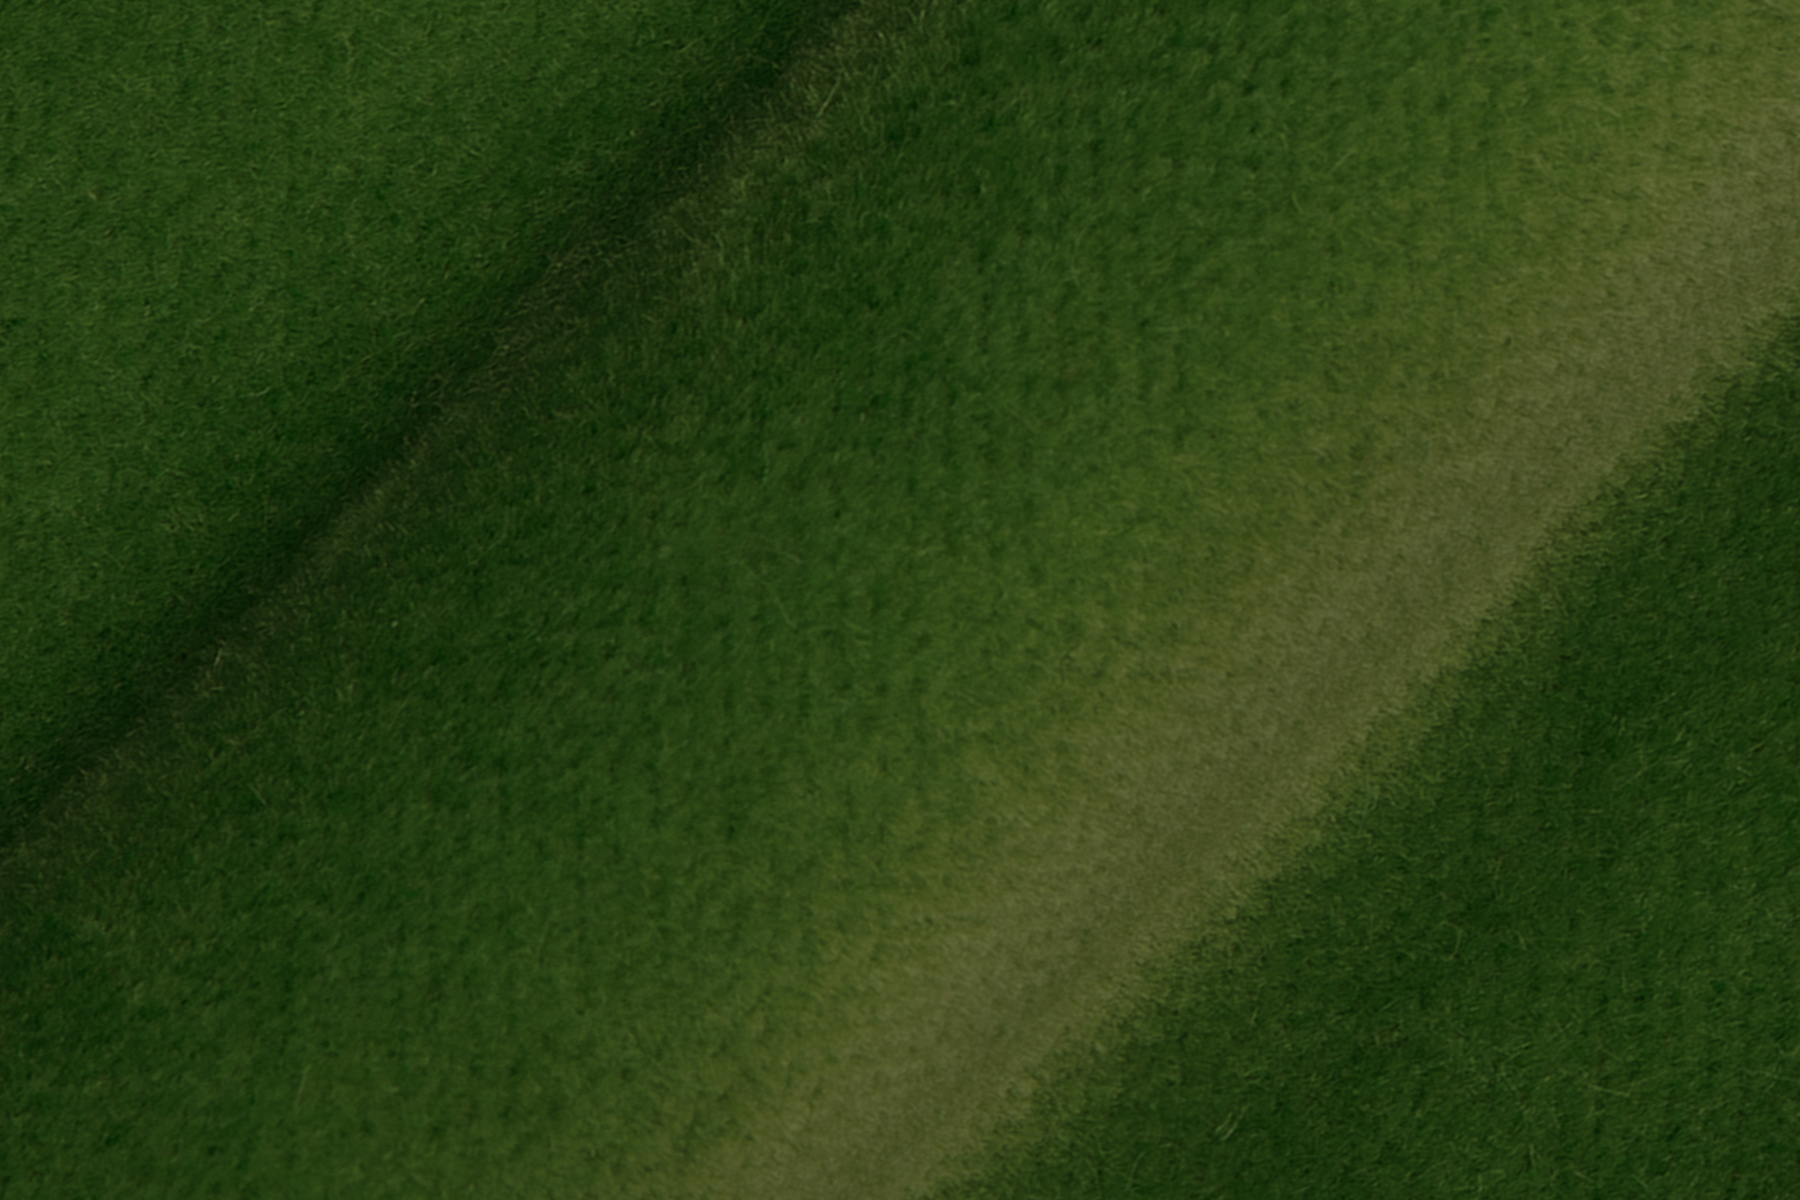 LUX VELVET 7076 TROPICAL GREEN Fabric by KOKET